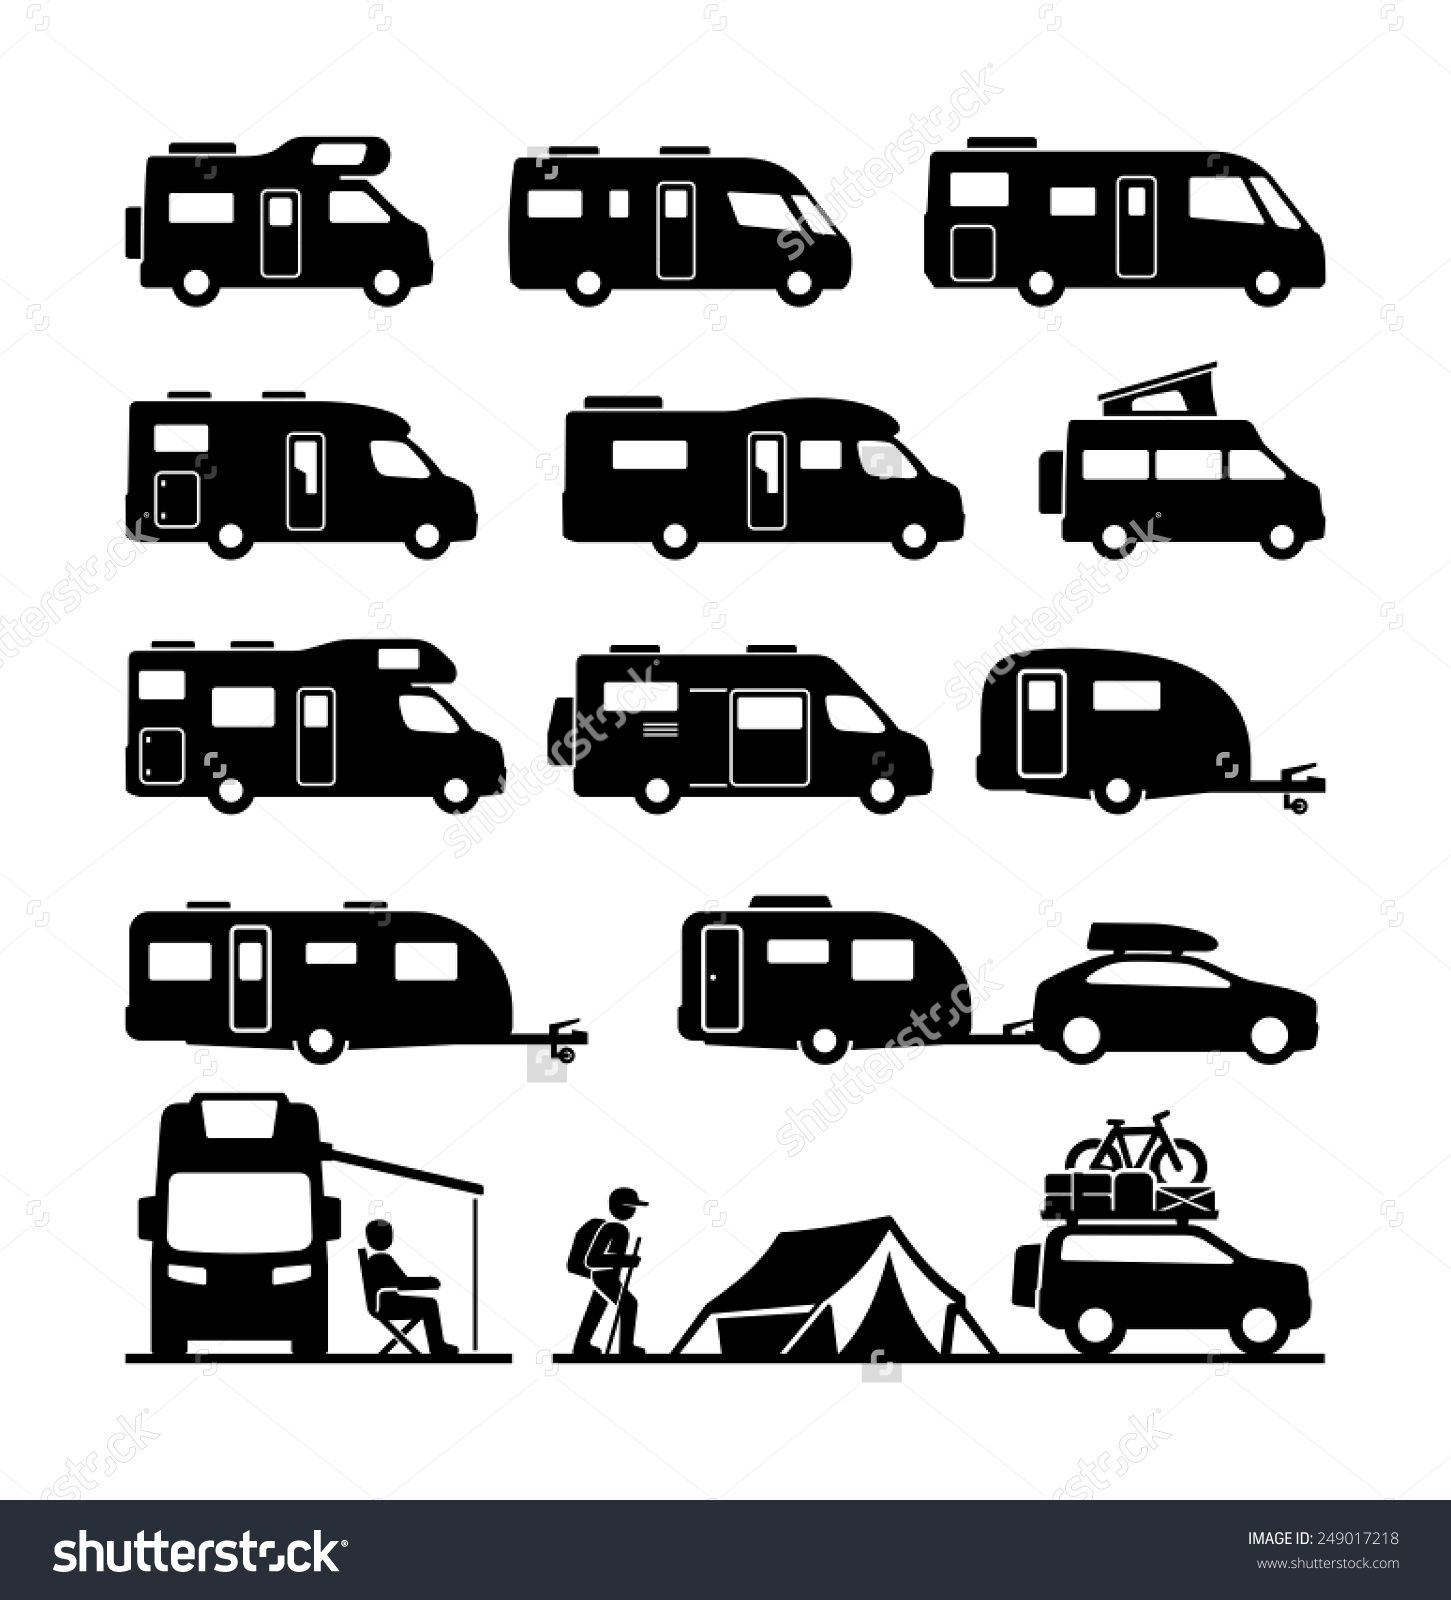 Image result for camping. Camper clipart black and white